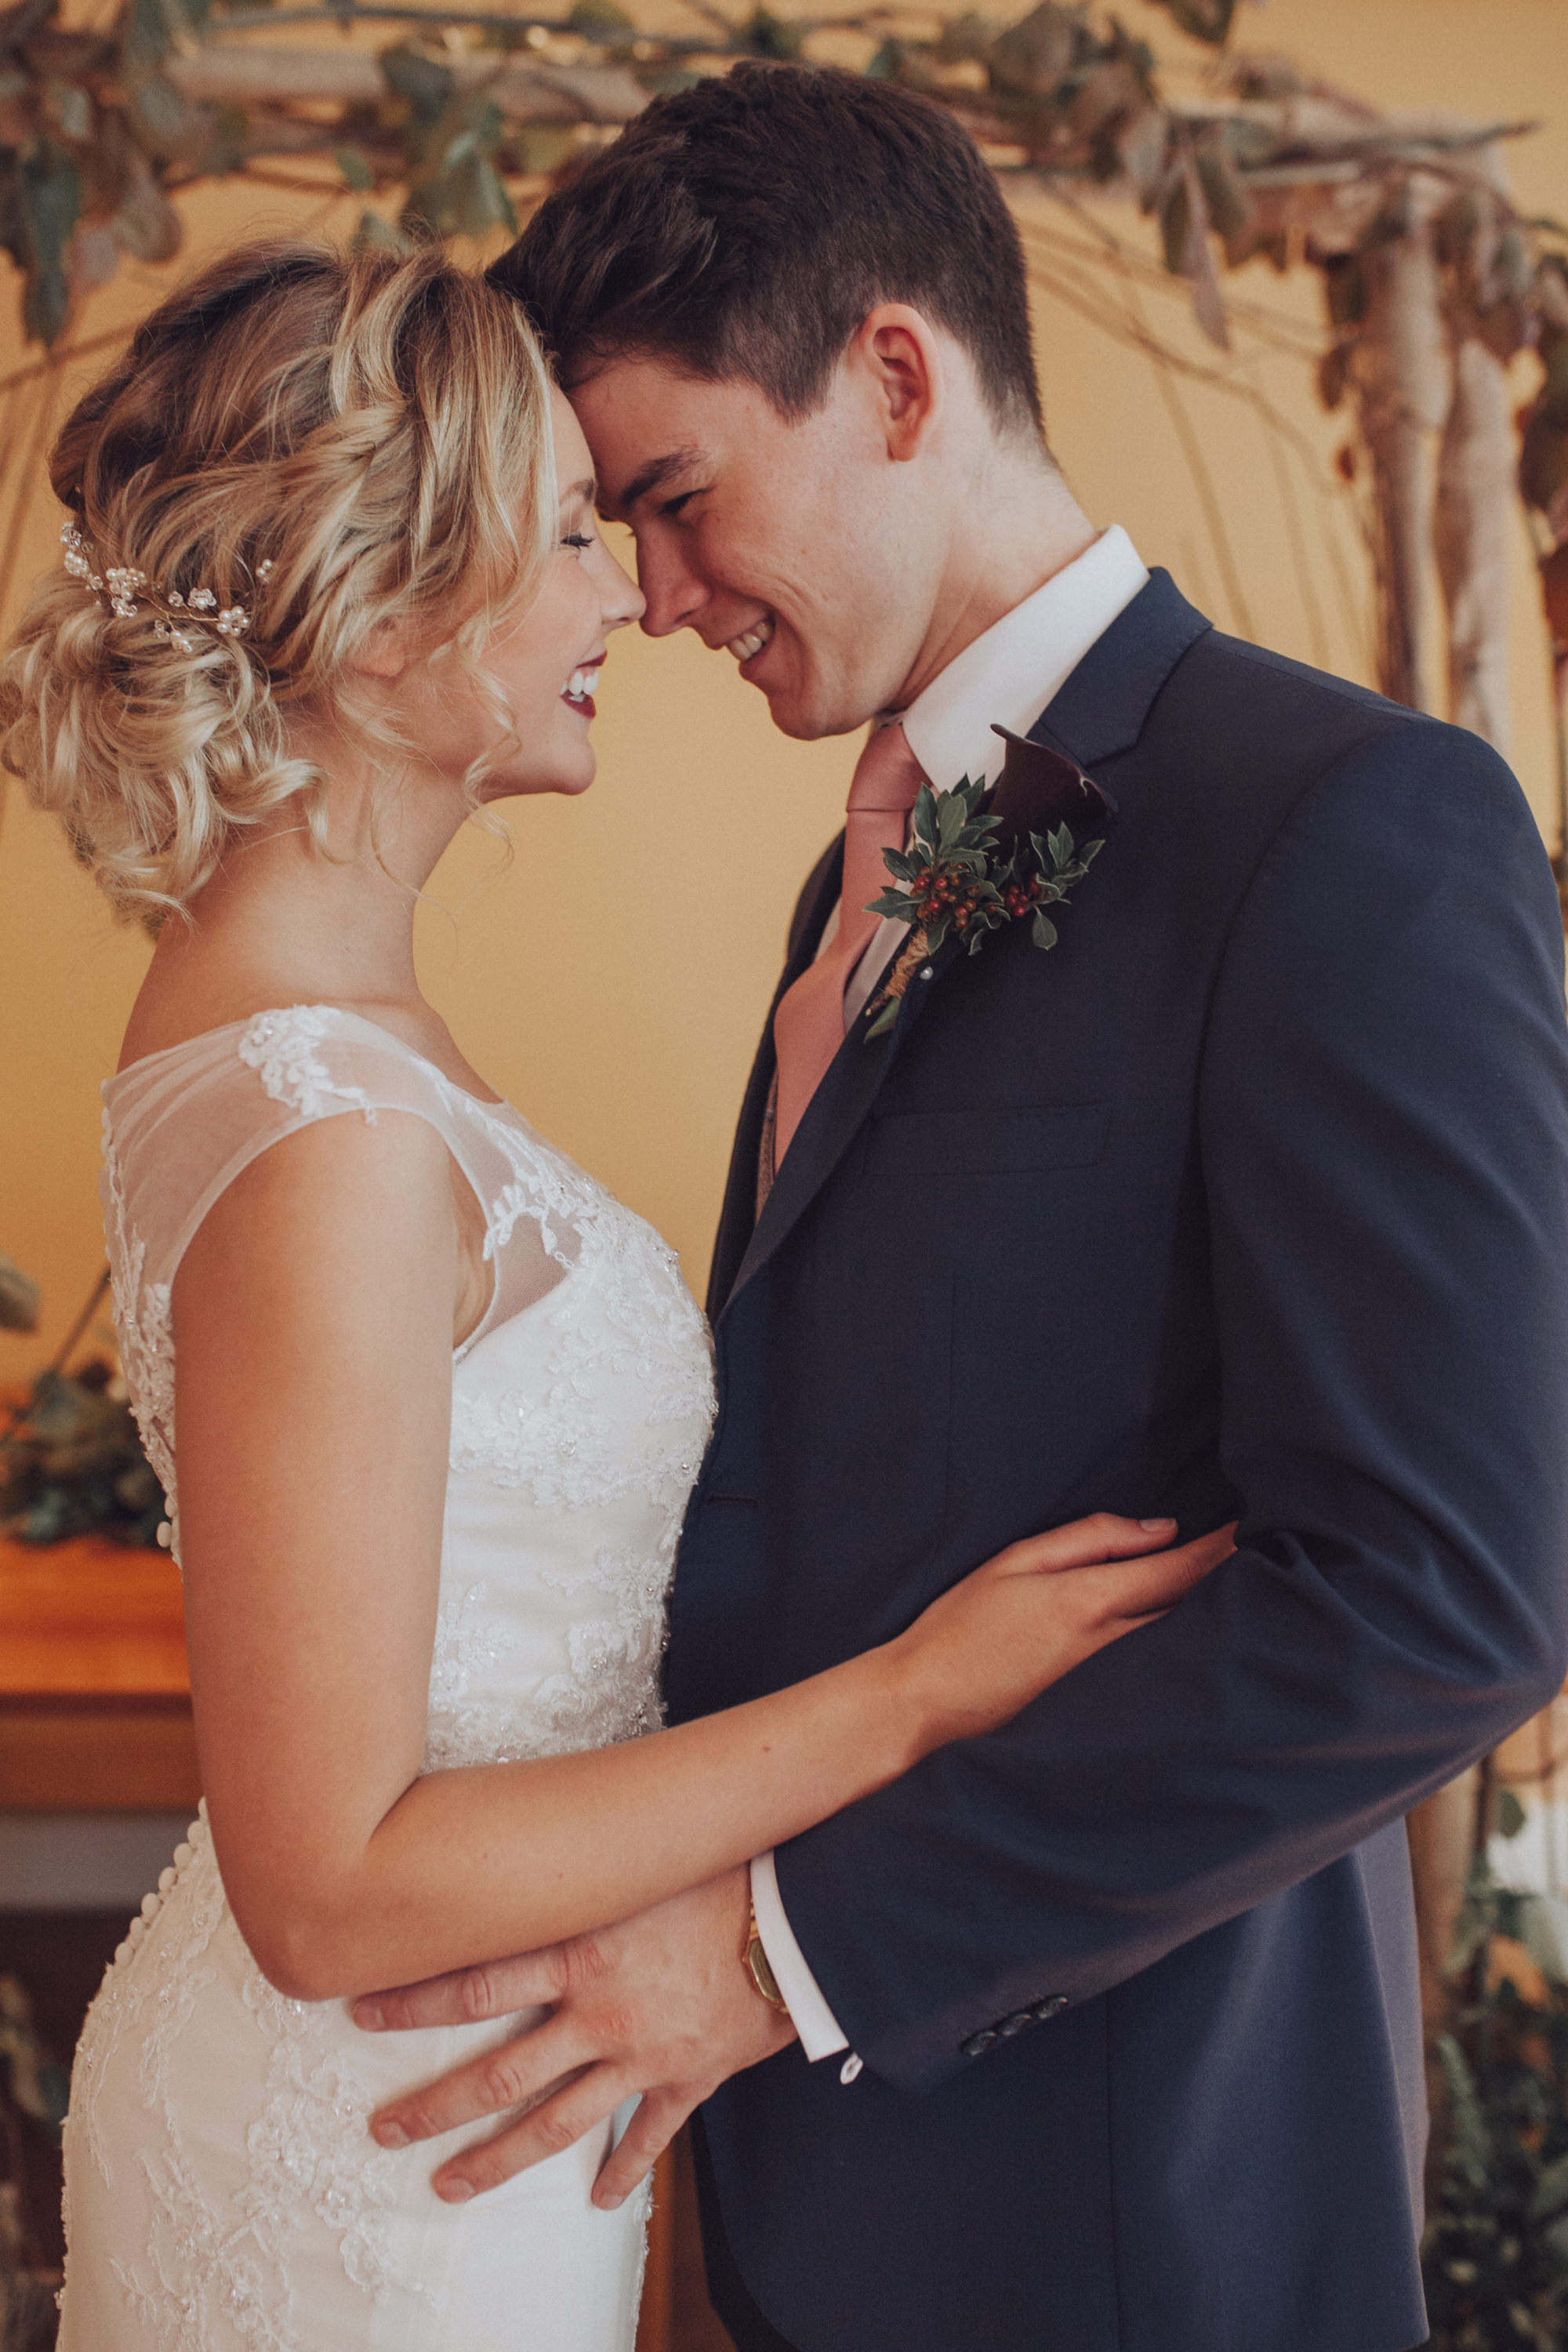 TerraVina-Styled-Wedding- side shot of hair, kissing groom.jpg